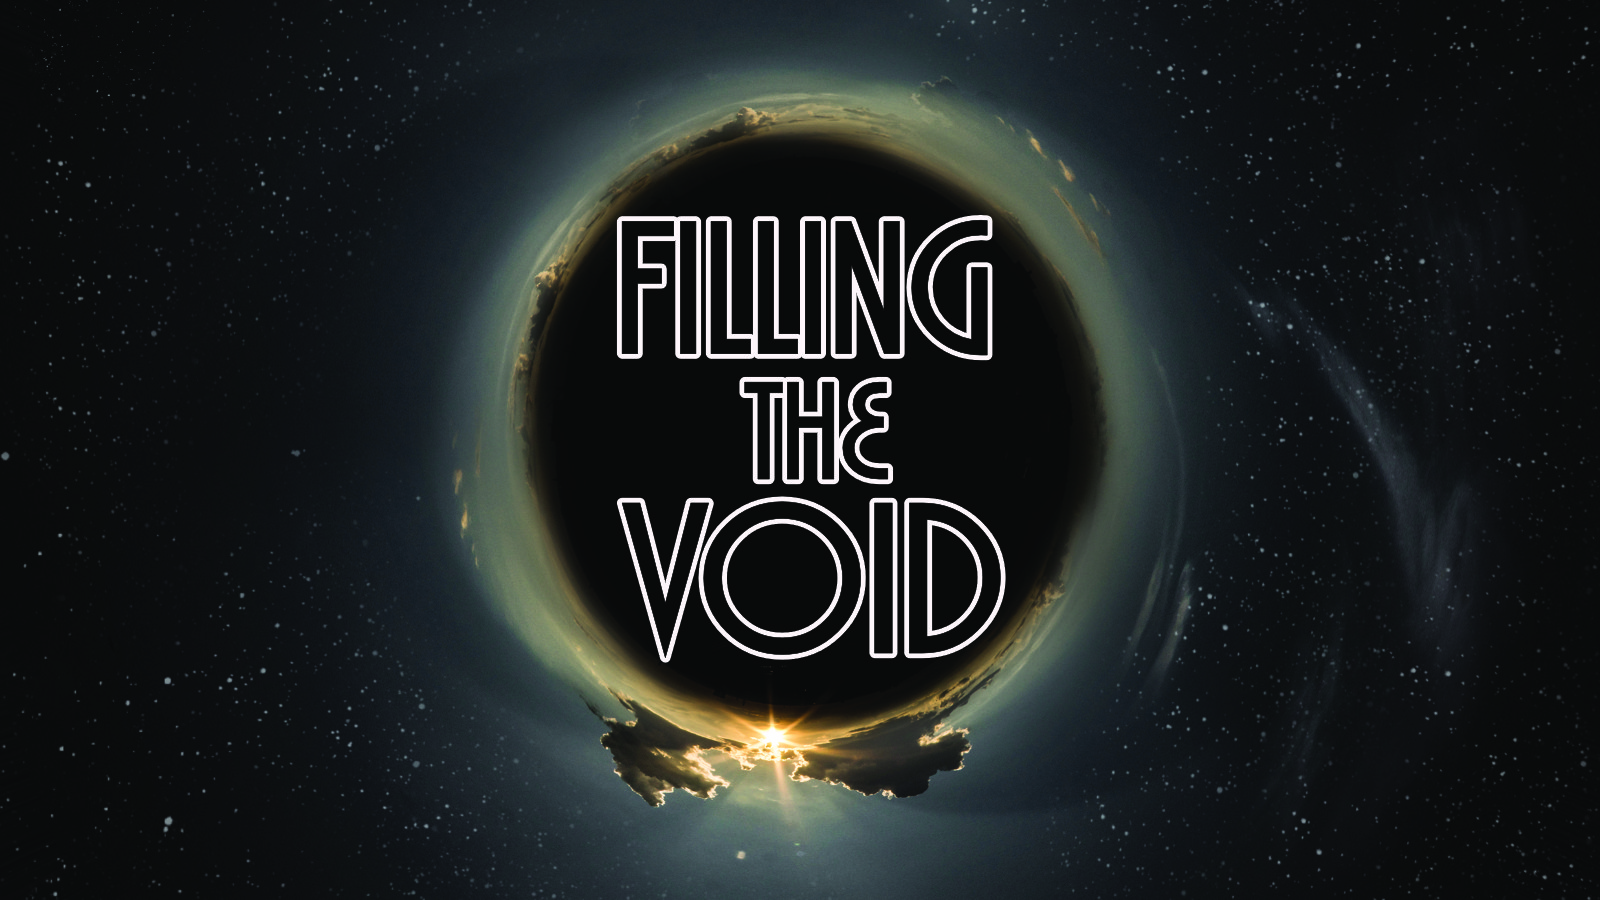 Filling the Void: Justice